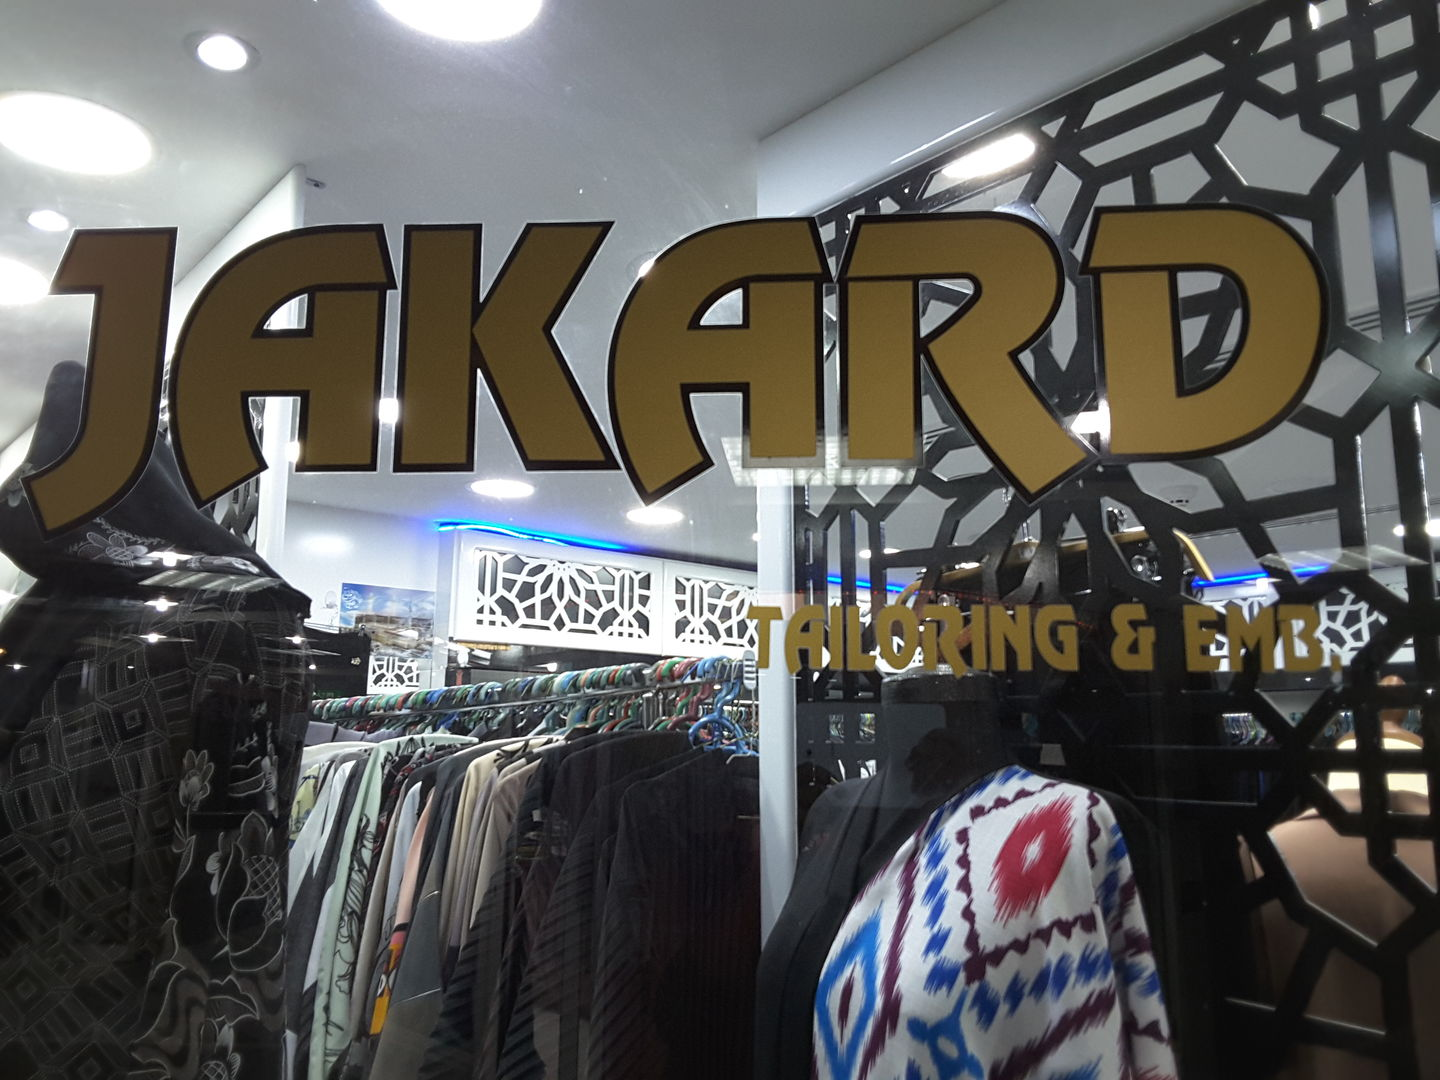 HiDubai-business-jakard-tailoring-embroidery-shopping-apparel-hor-al-anz-east-dubai-2